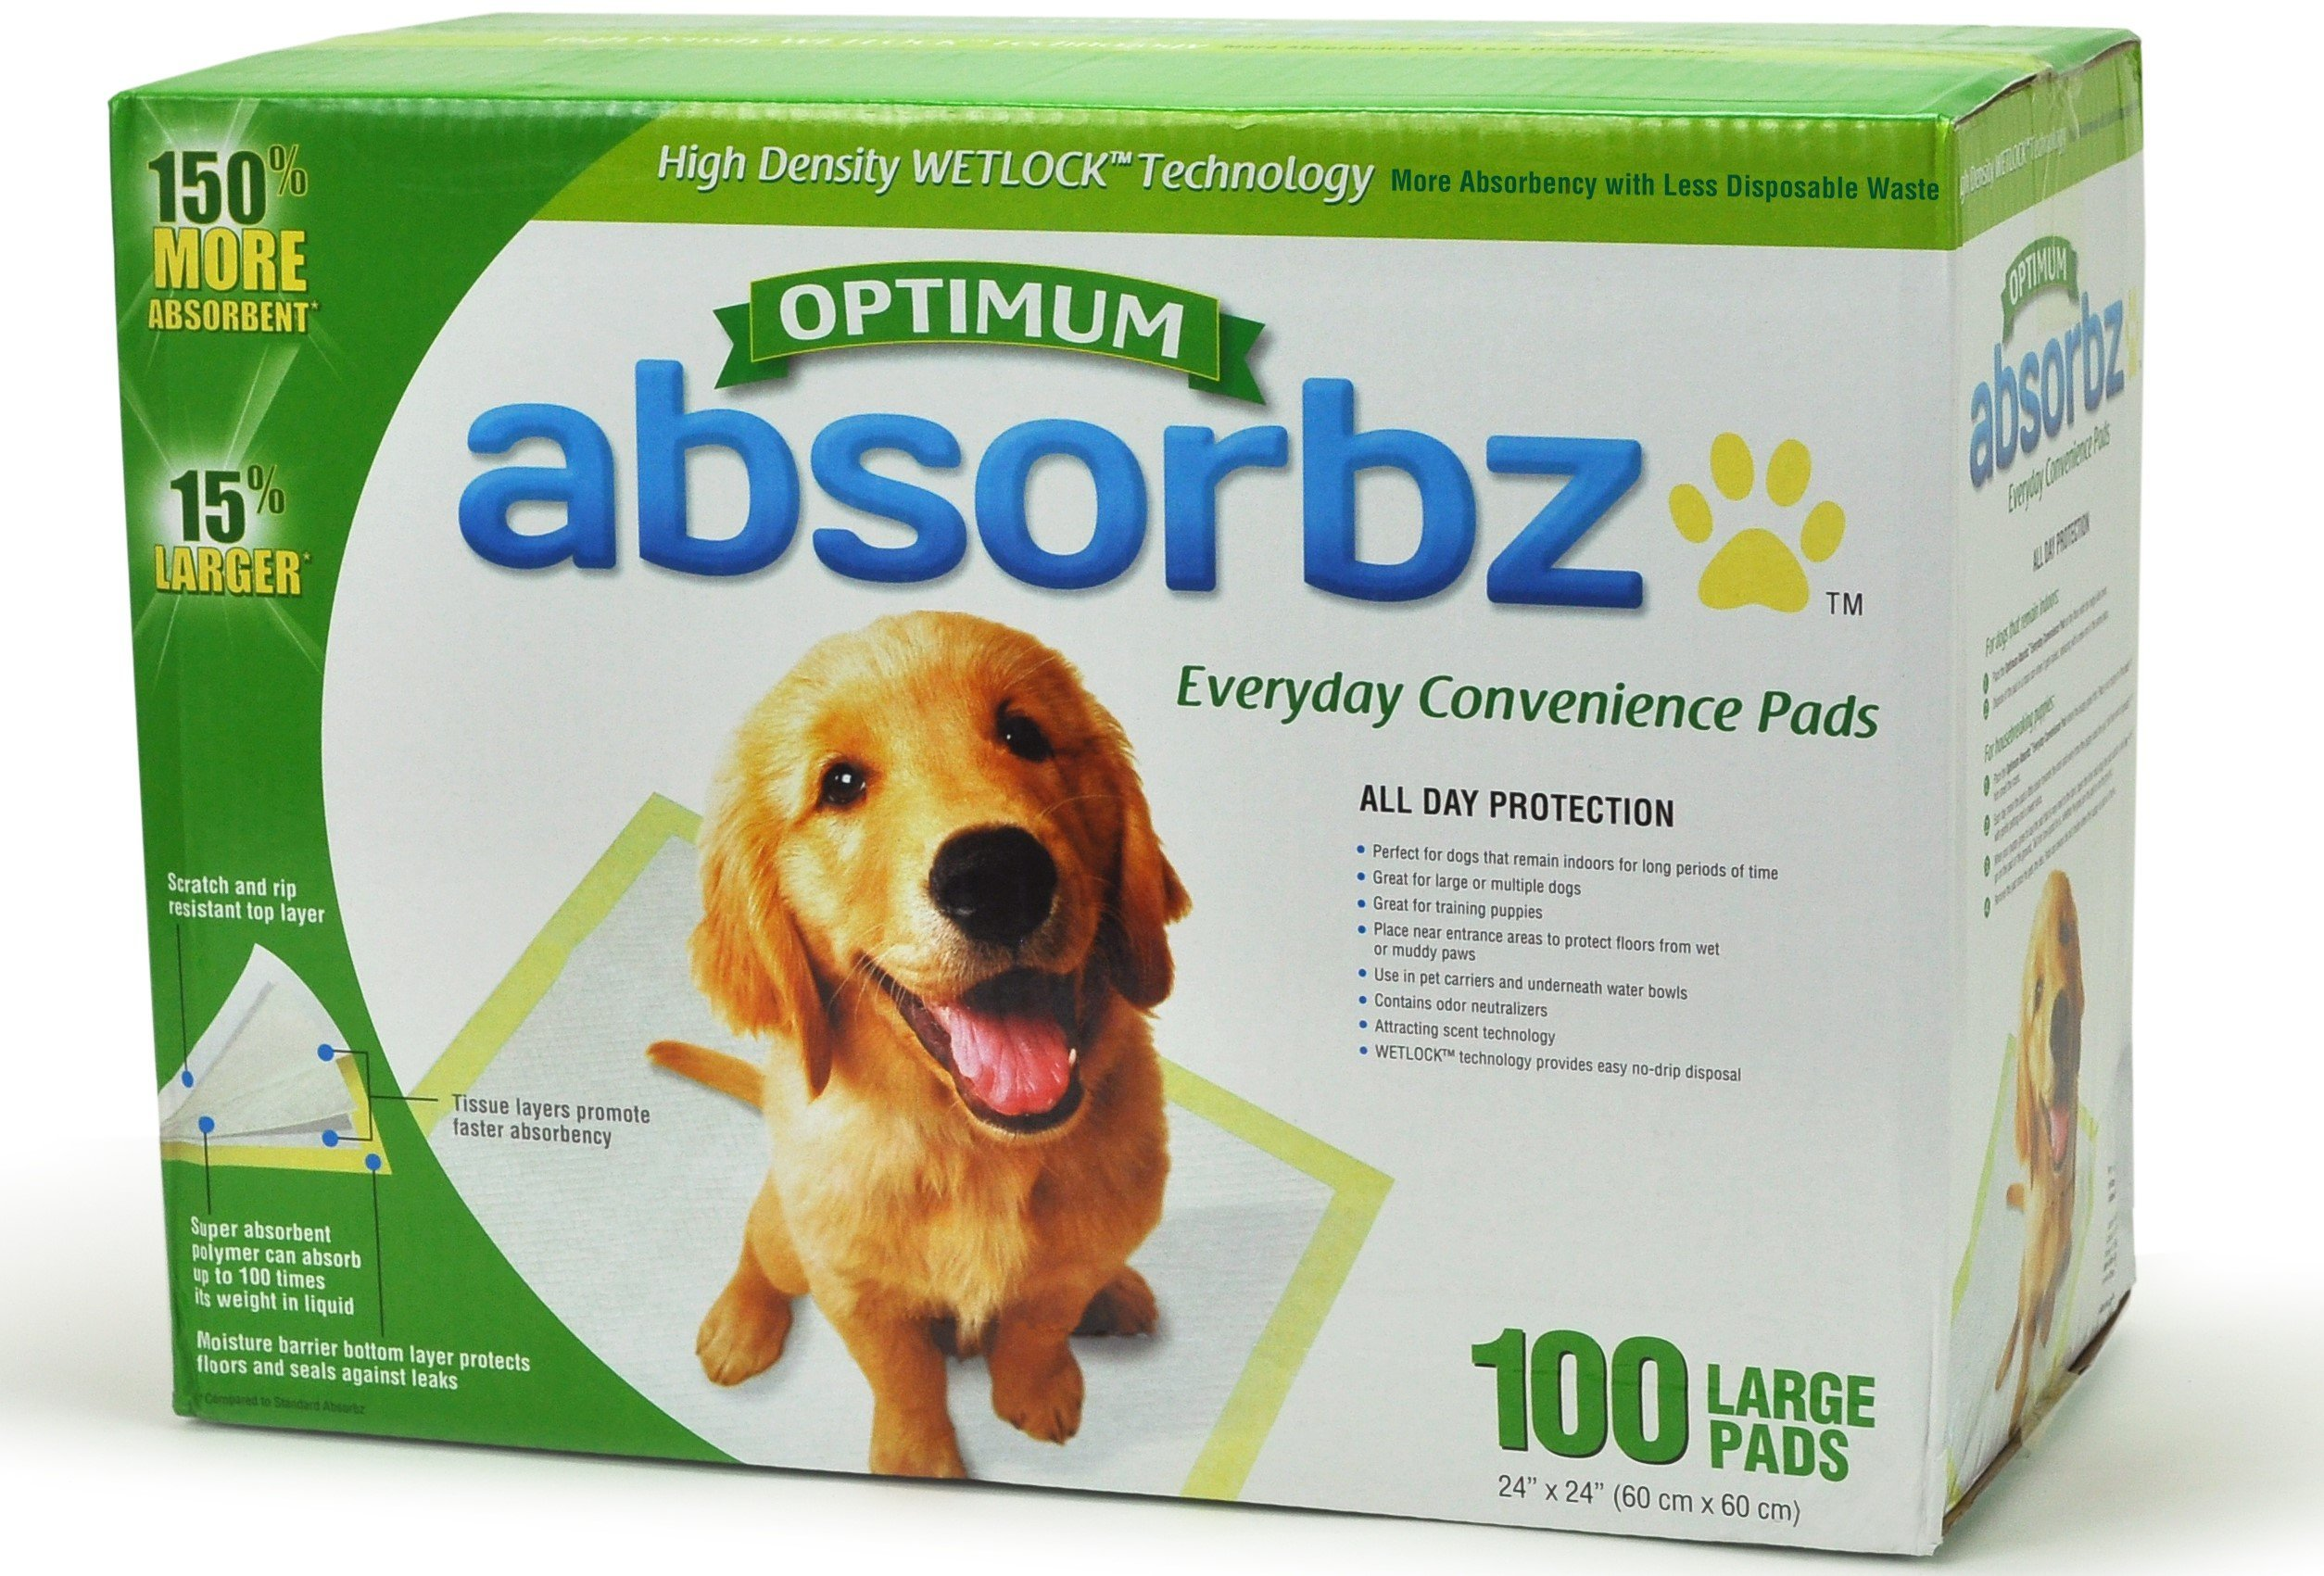 Absorbz Optimum Training Pads for Dogs, 100 ct. Large 24''x24'' Pads by Absorbz